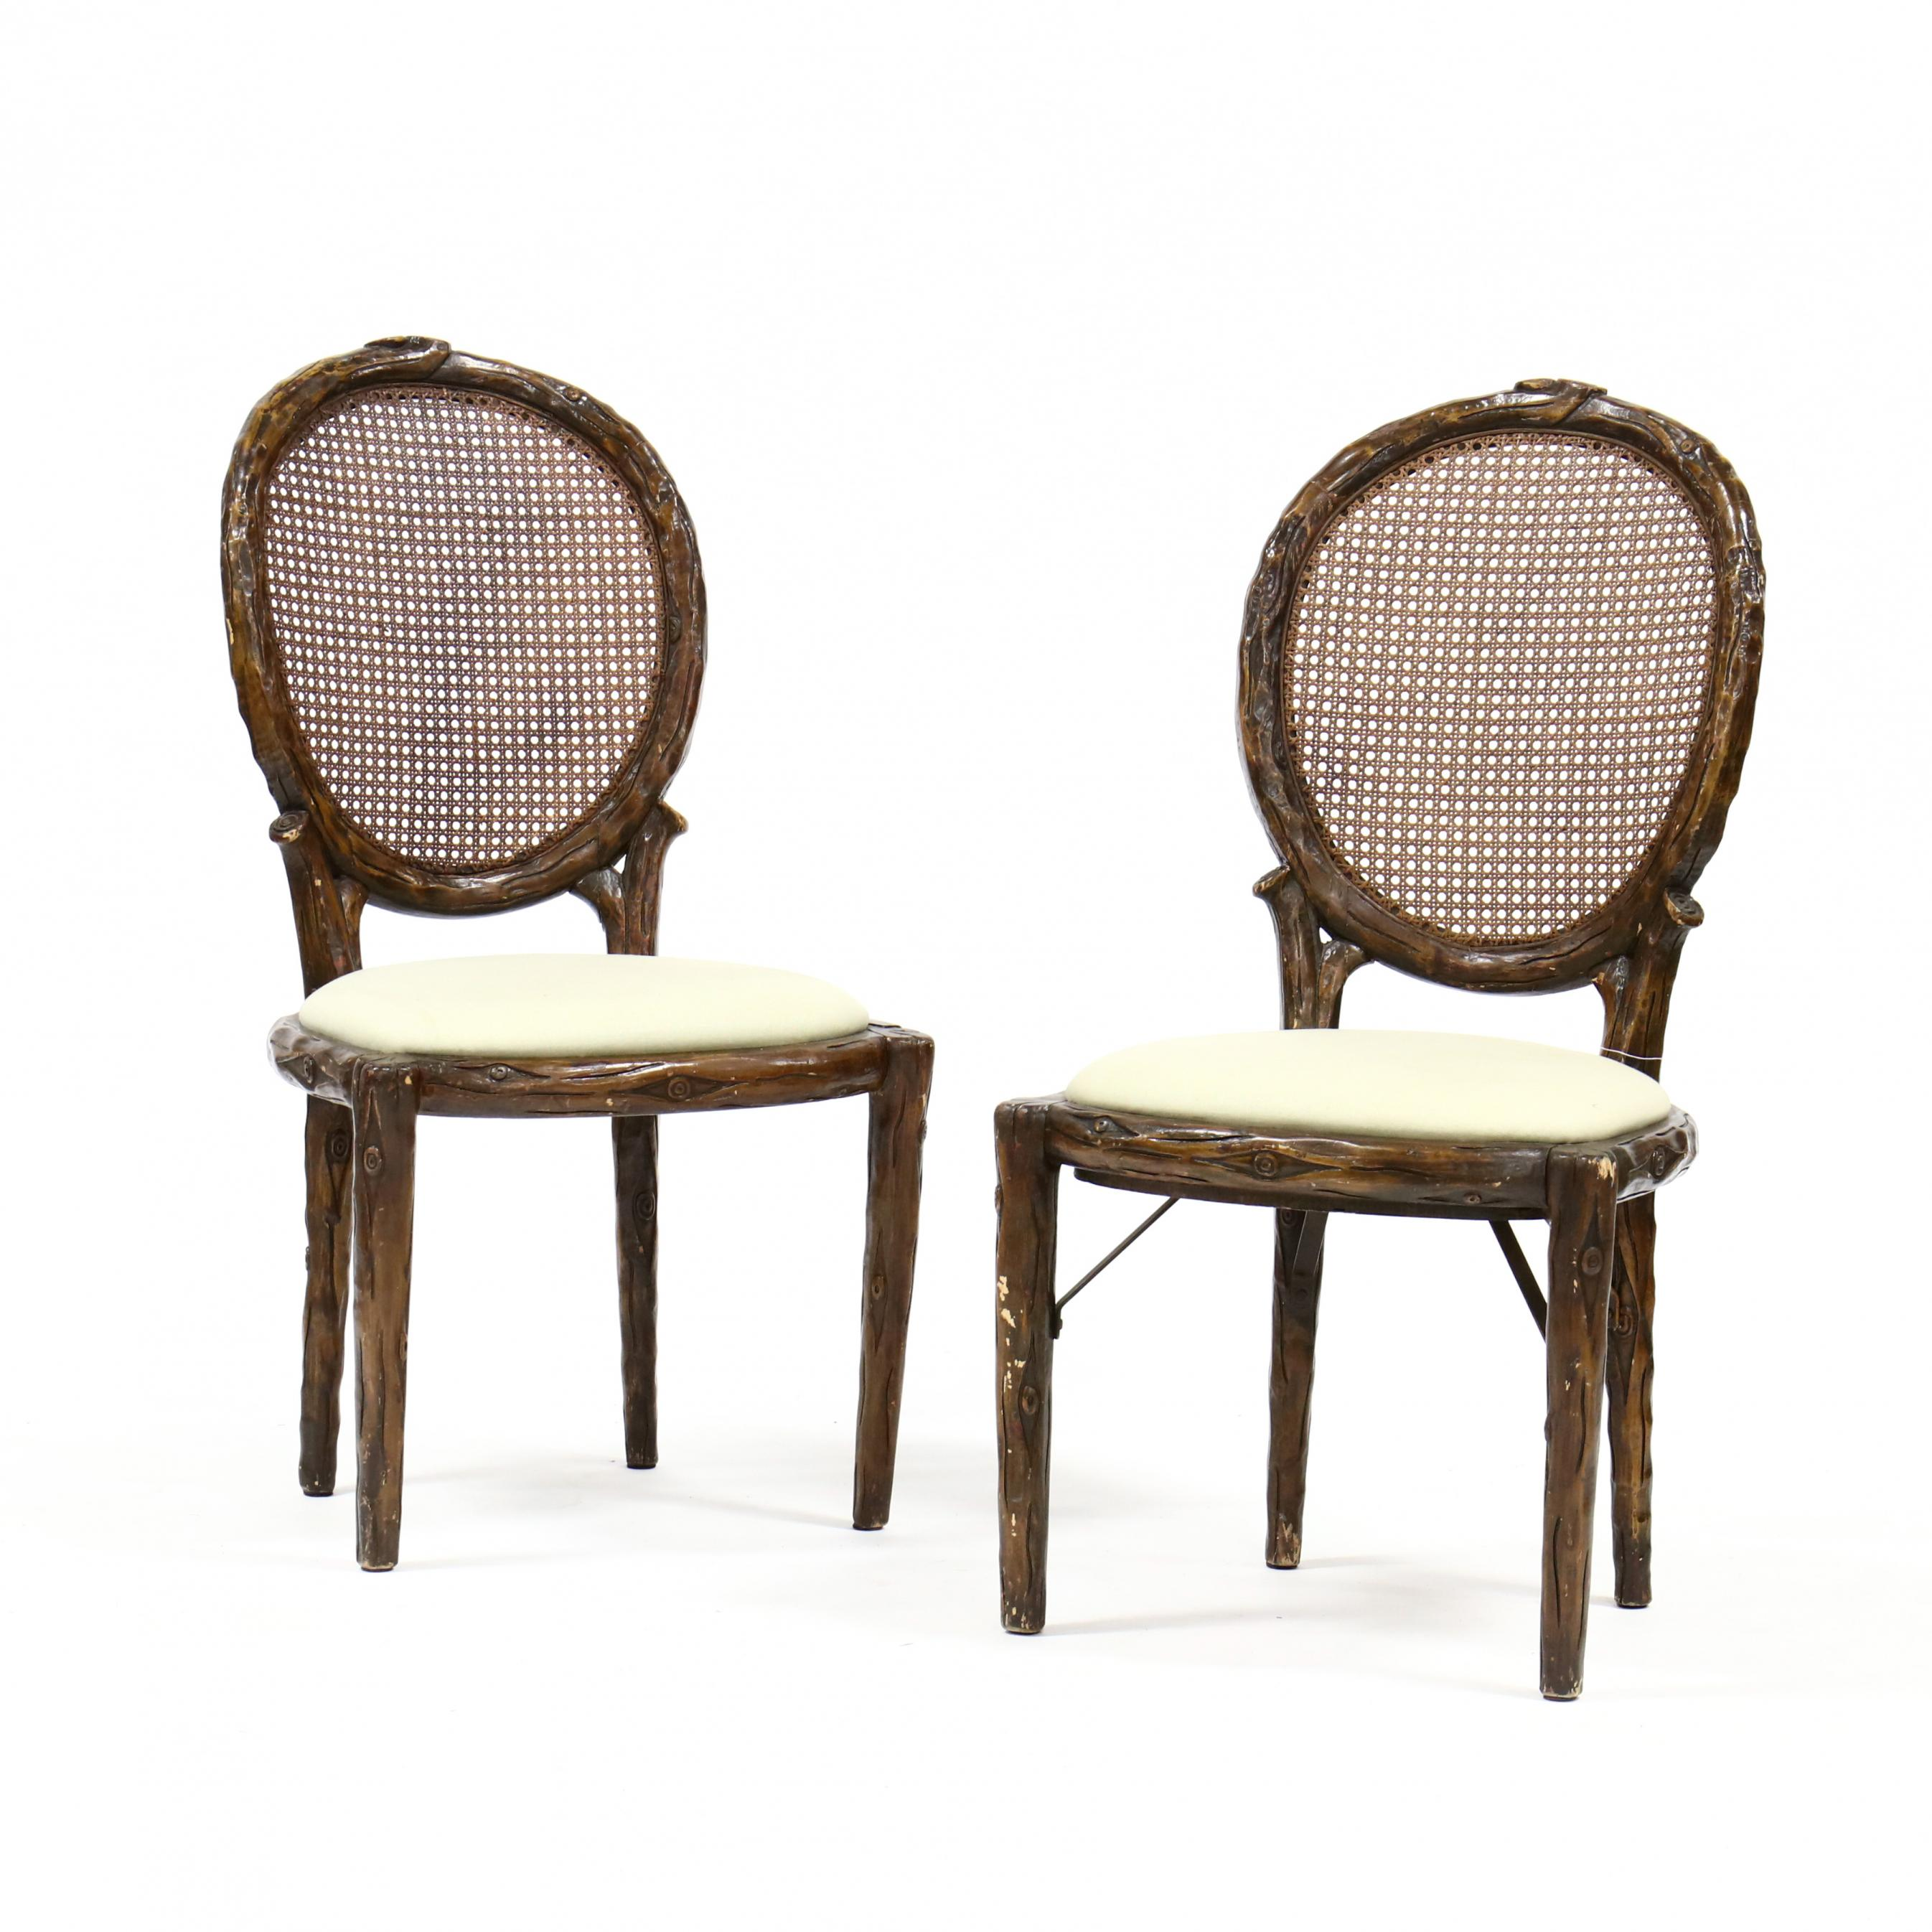 pair-of-faux-bois-carved-and-painted-side-chairs